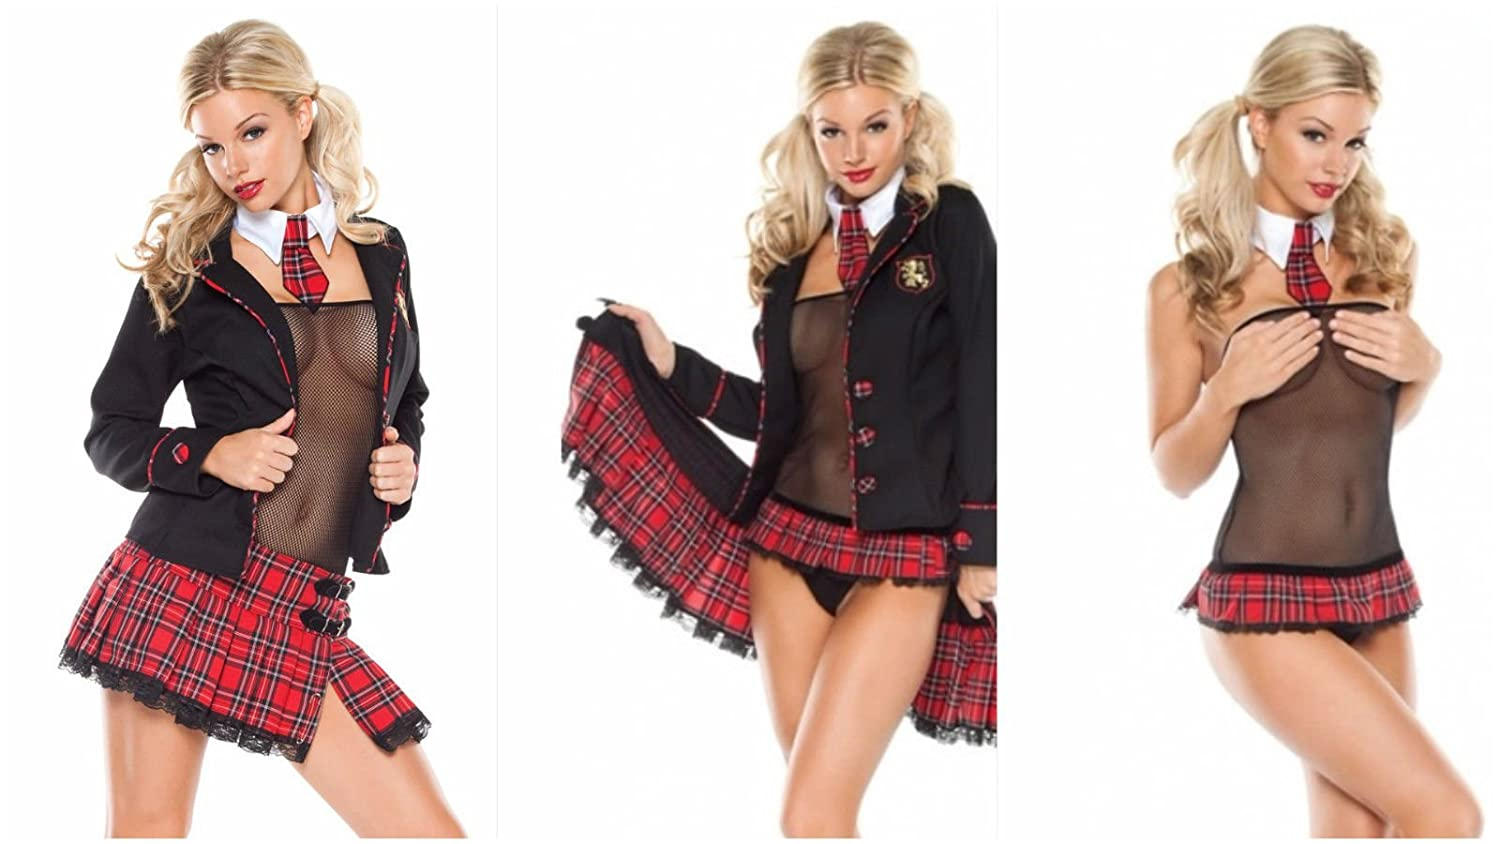 NEW WOMENS LADIES NAUGHTY SCHOOL GIRL HEN DOO FANCY DRESS PARTY OUTFIT  LINGERIE ROLE PLAY ADULT 8 - 10 UK  Amazon.co.uk  Clothing 3931bfcef771